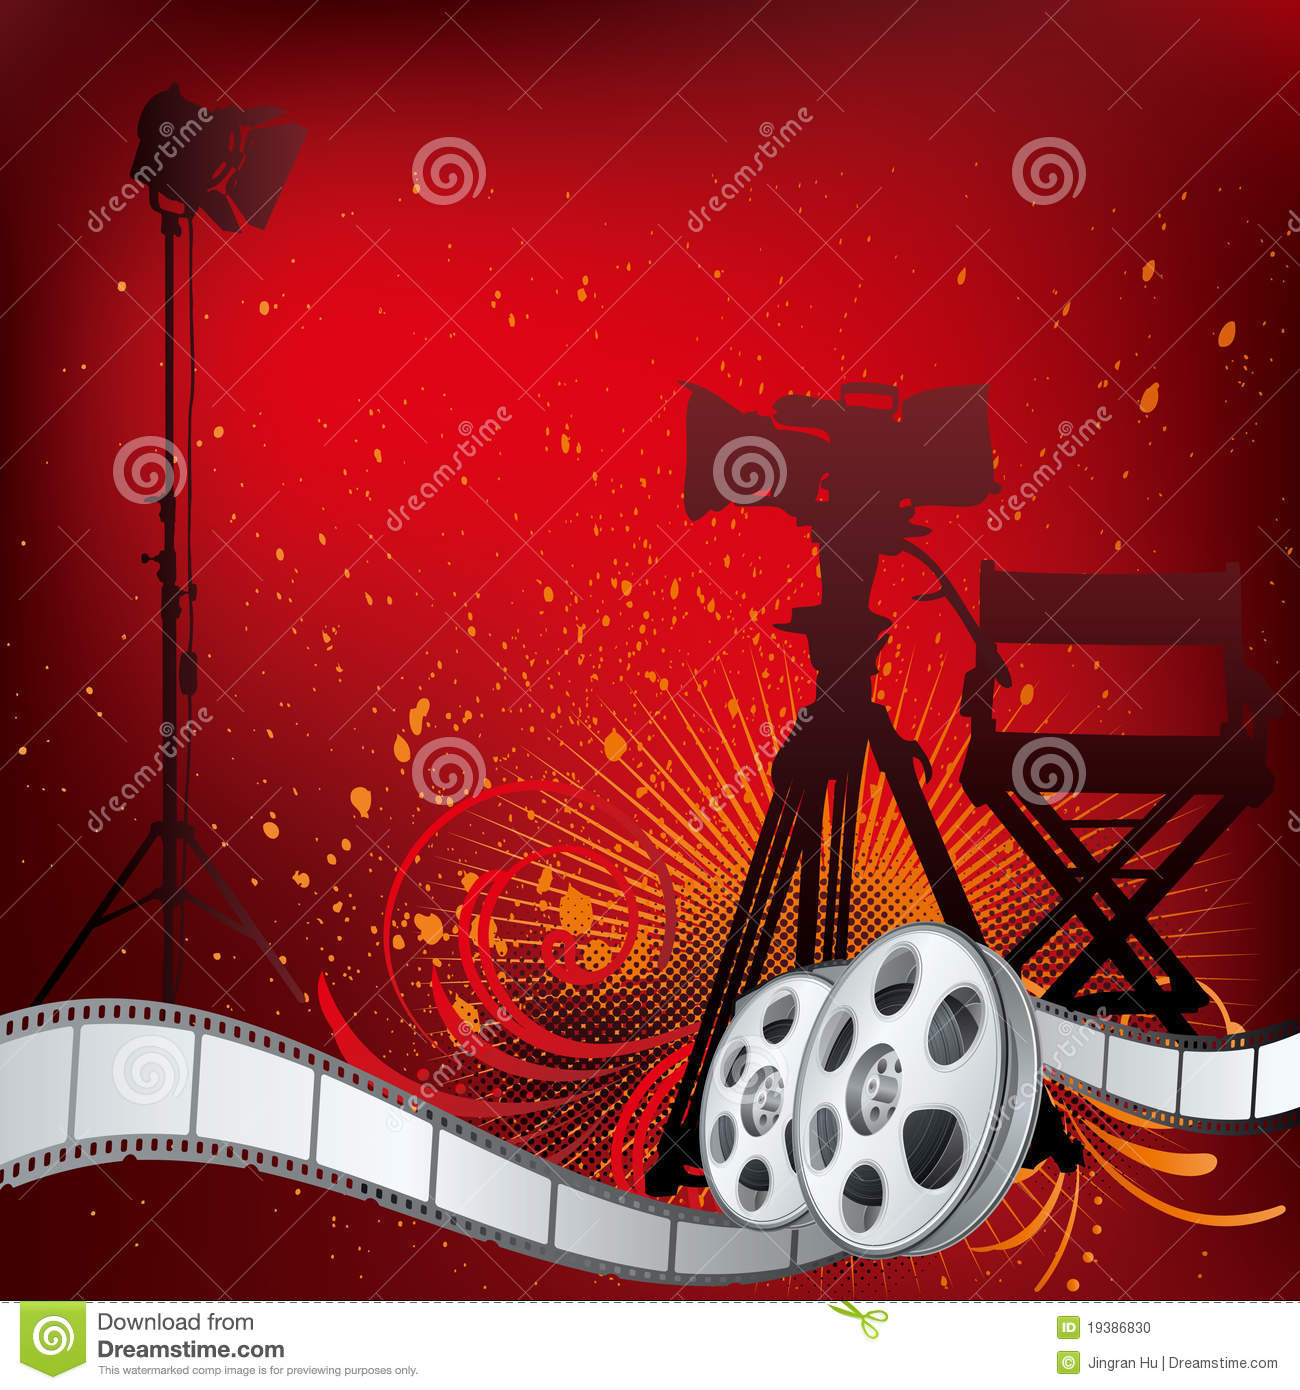 download movie theme wallpaper gallery